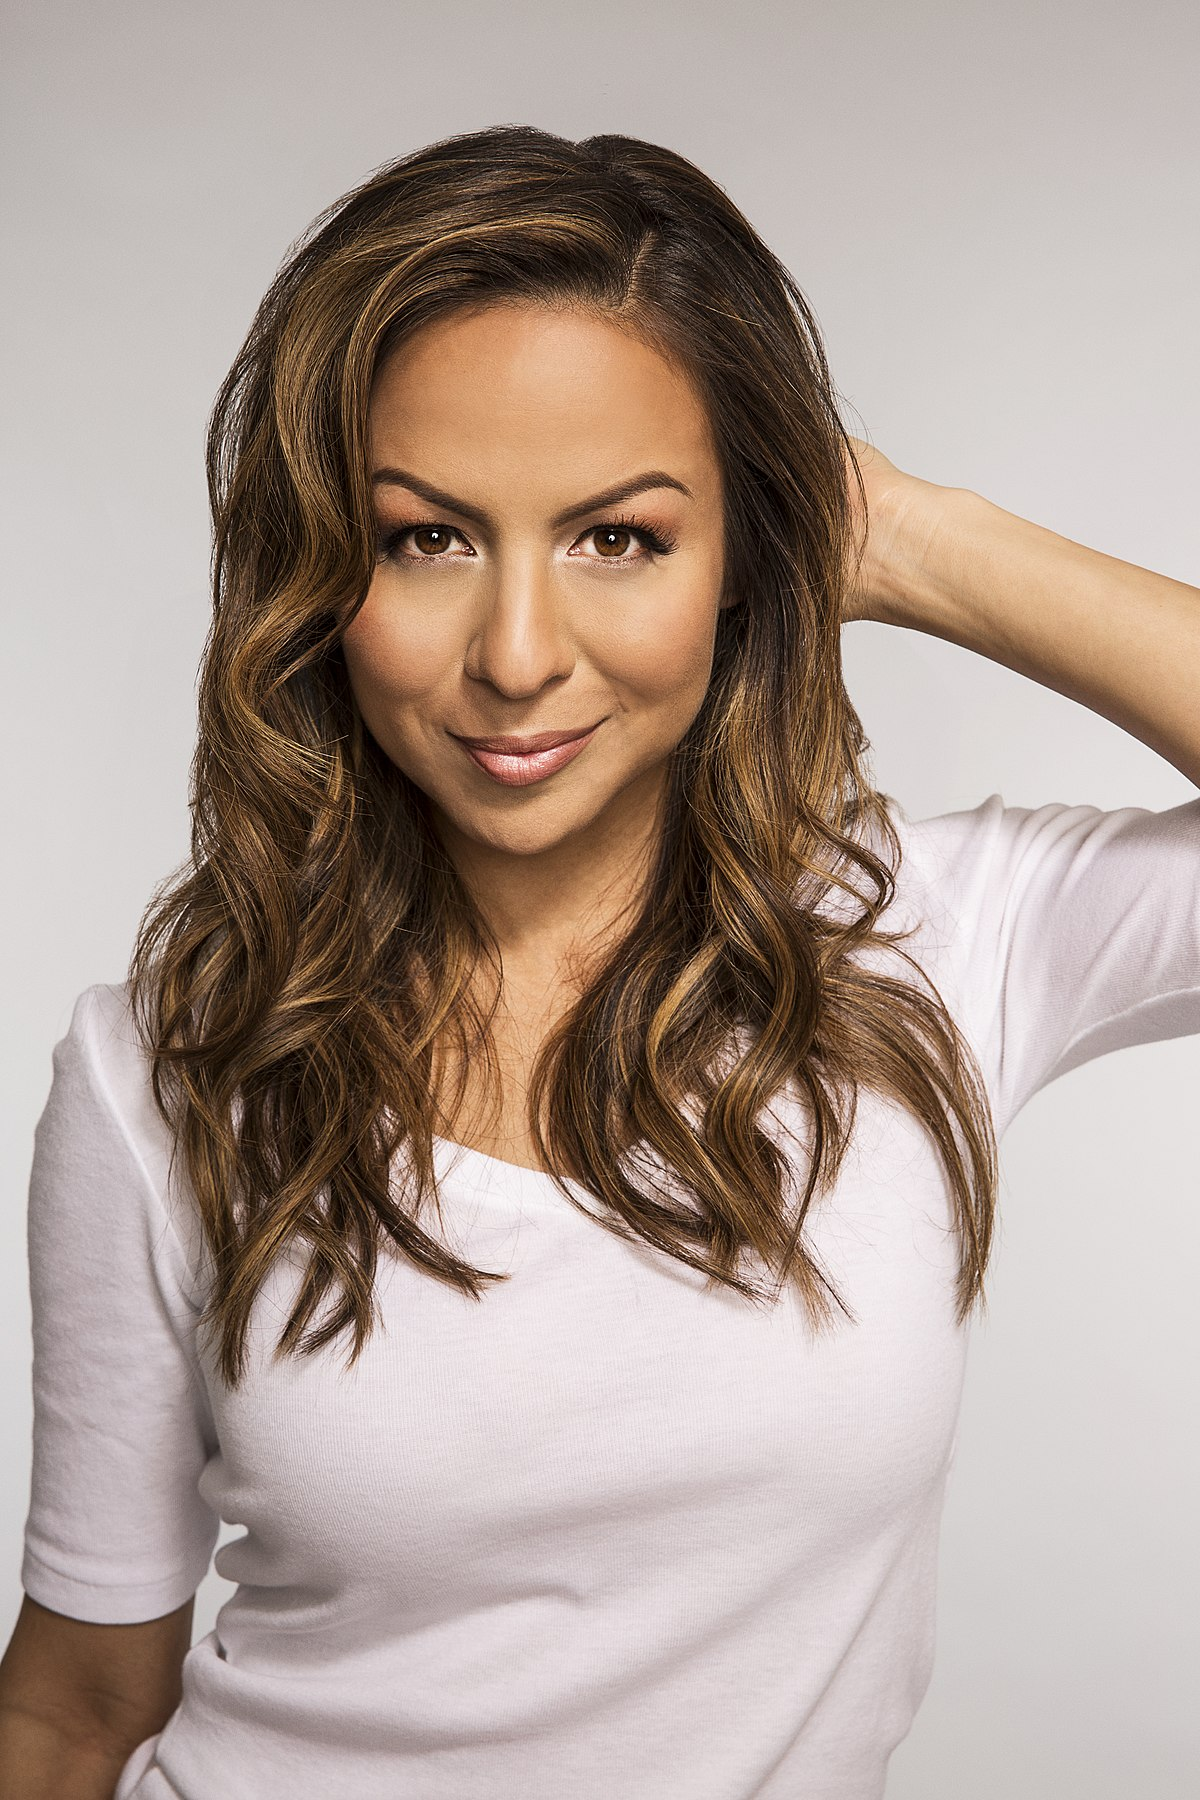 Anjelah | Official website of Anjelah Johnson / Bon Qui Qui